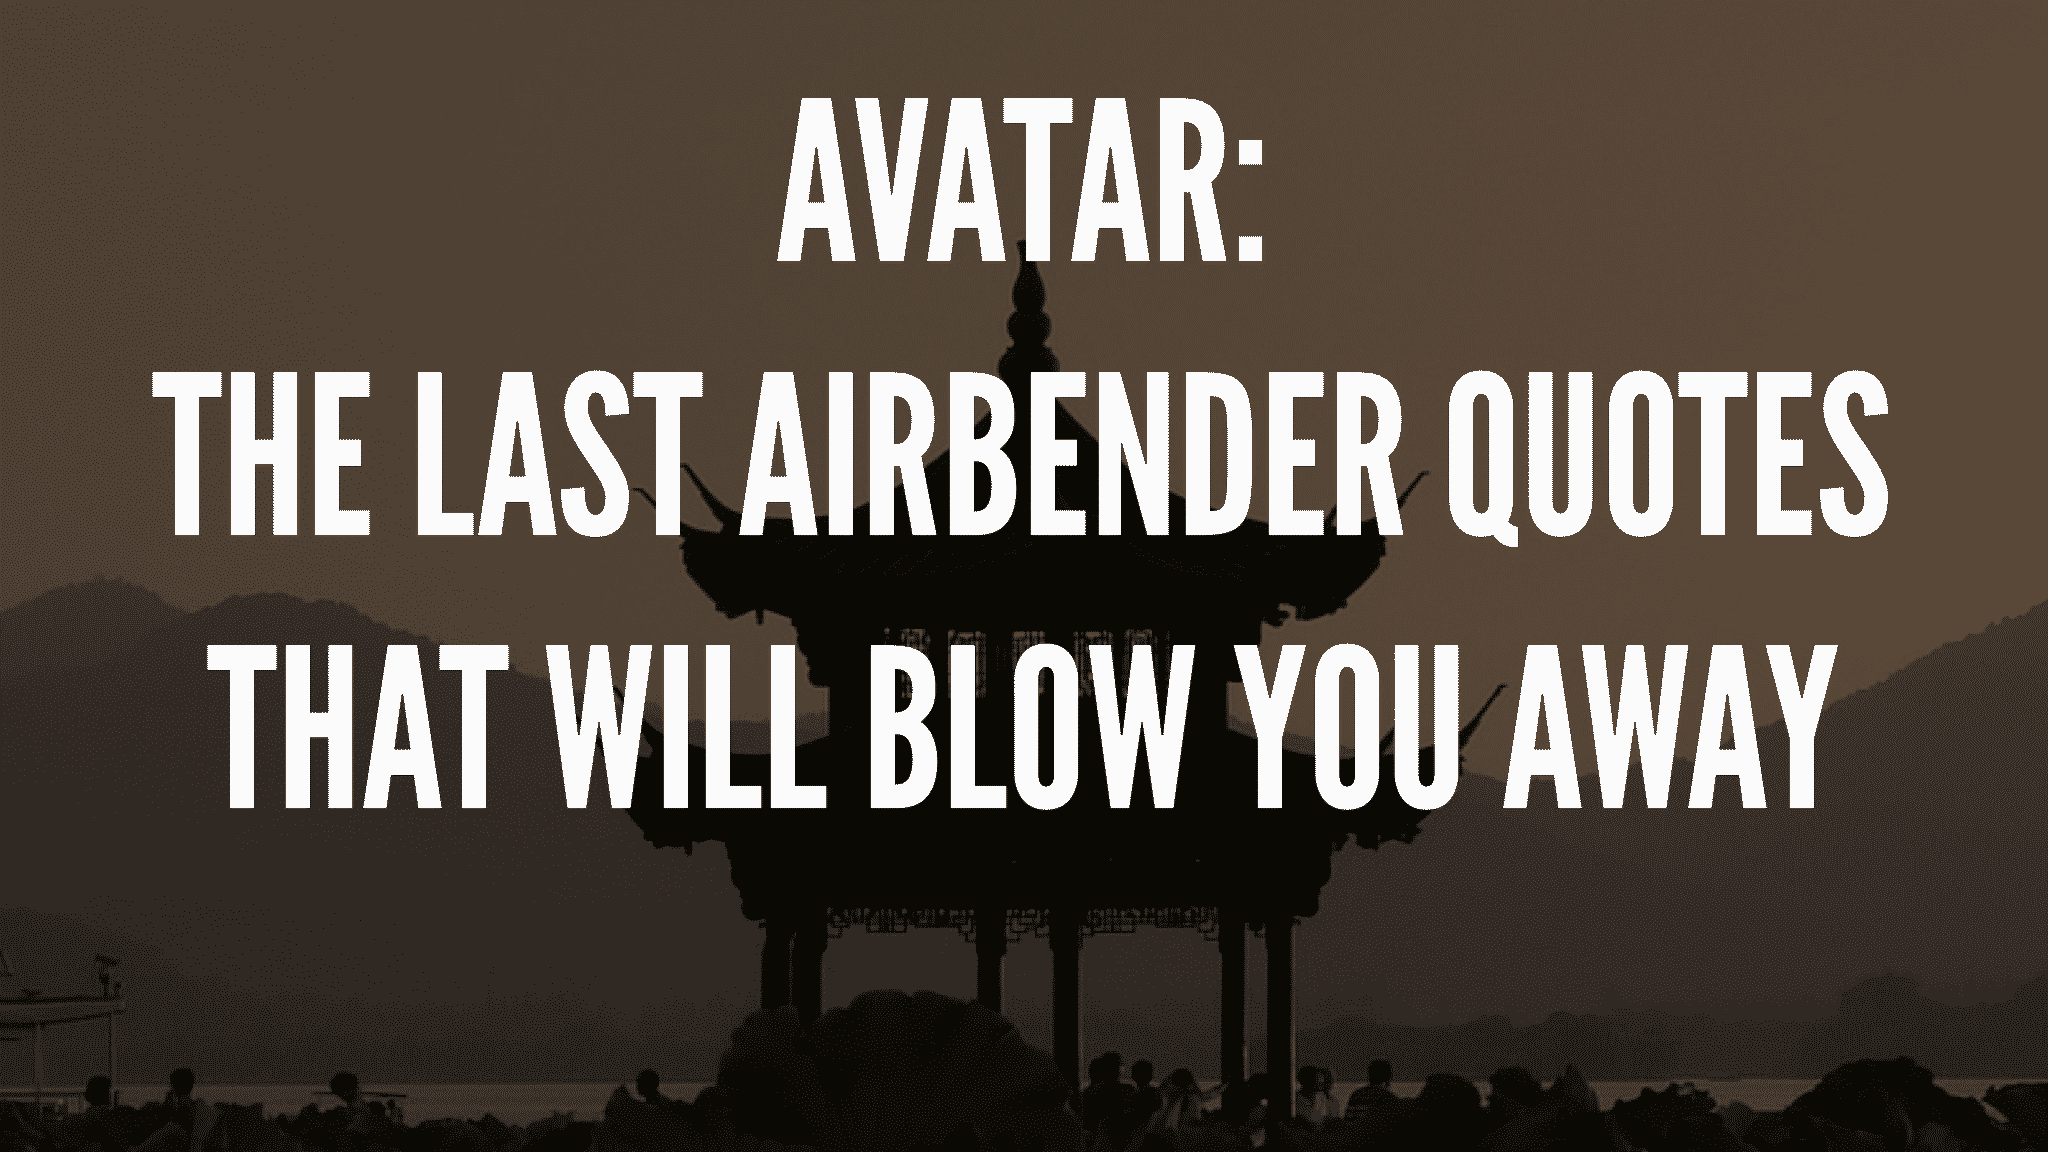 Avatar: The Last Airbender Quotes That Will Blow You Away